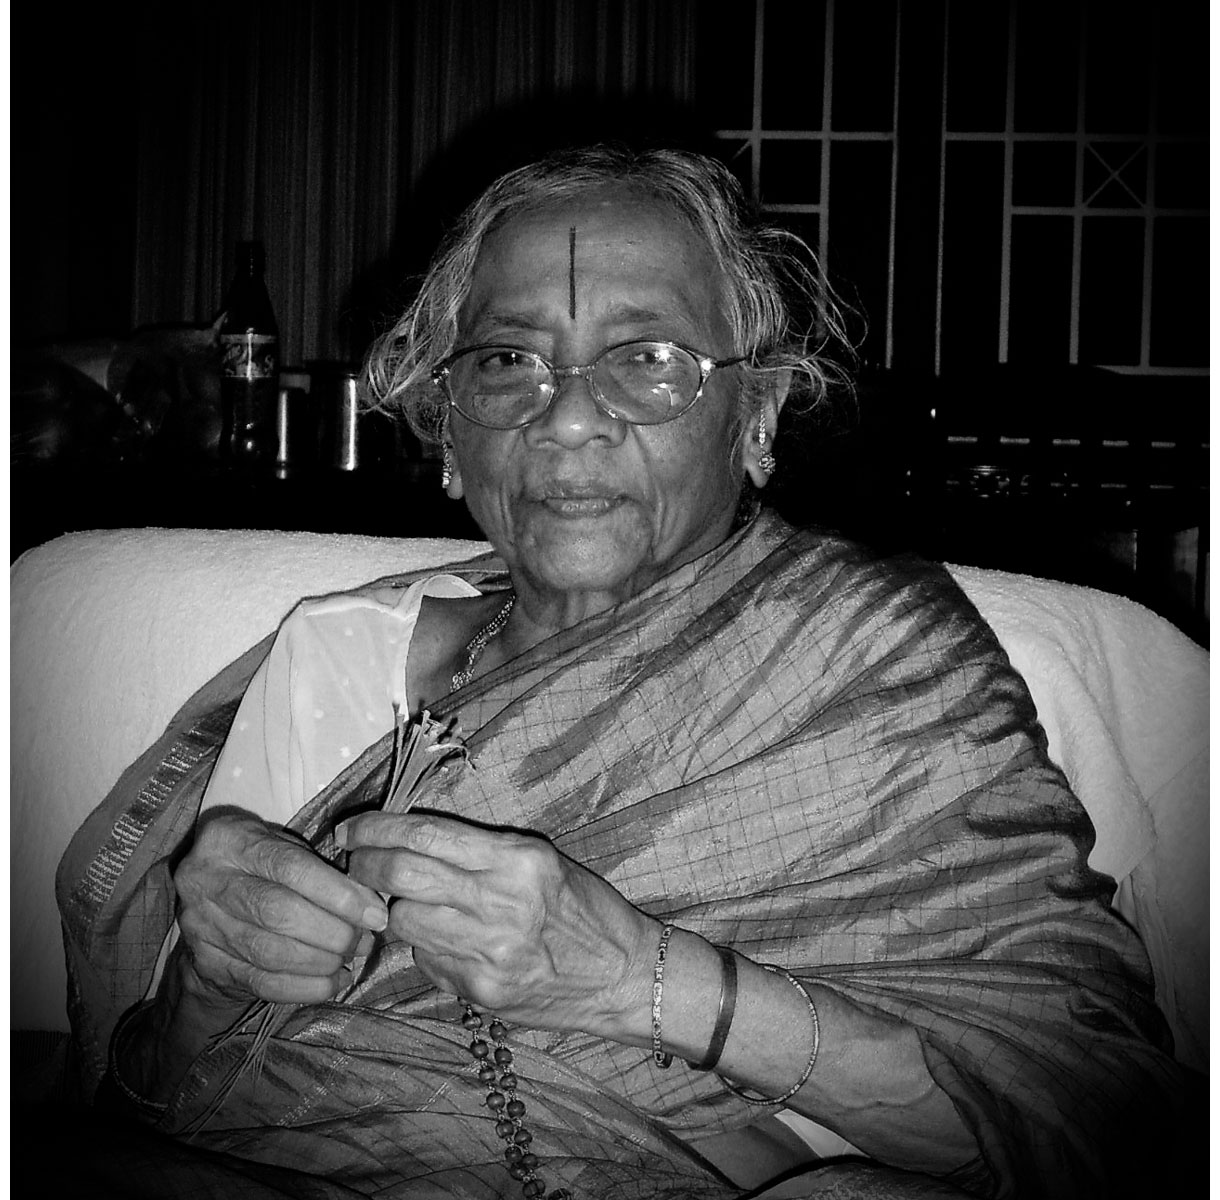 Smt. Komalavali Mani - My late grandmother